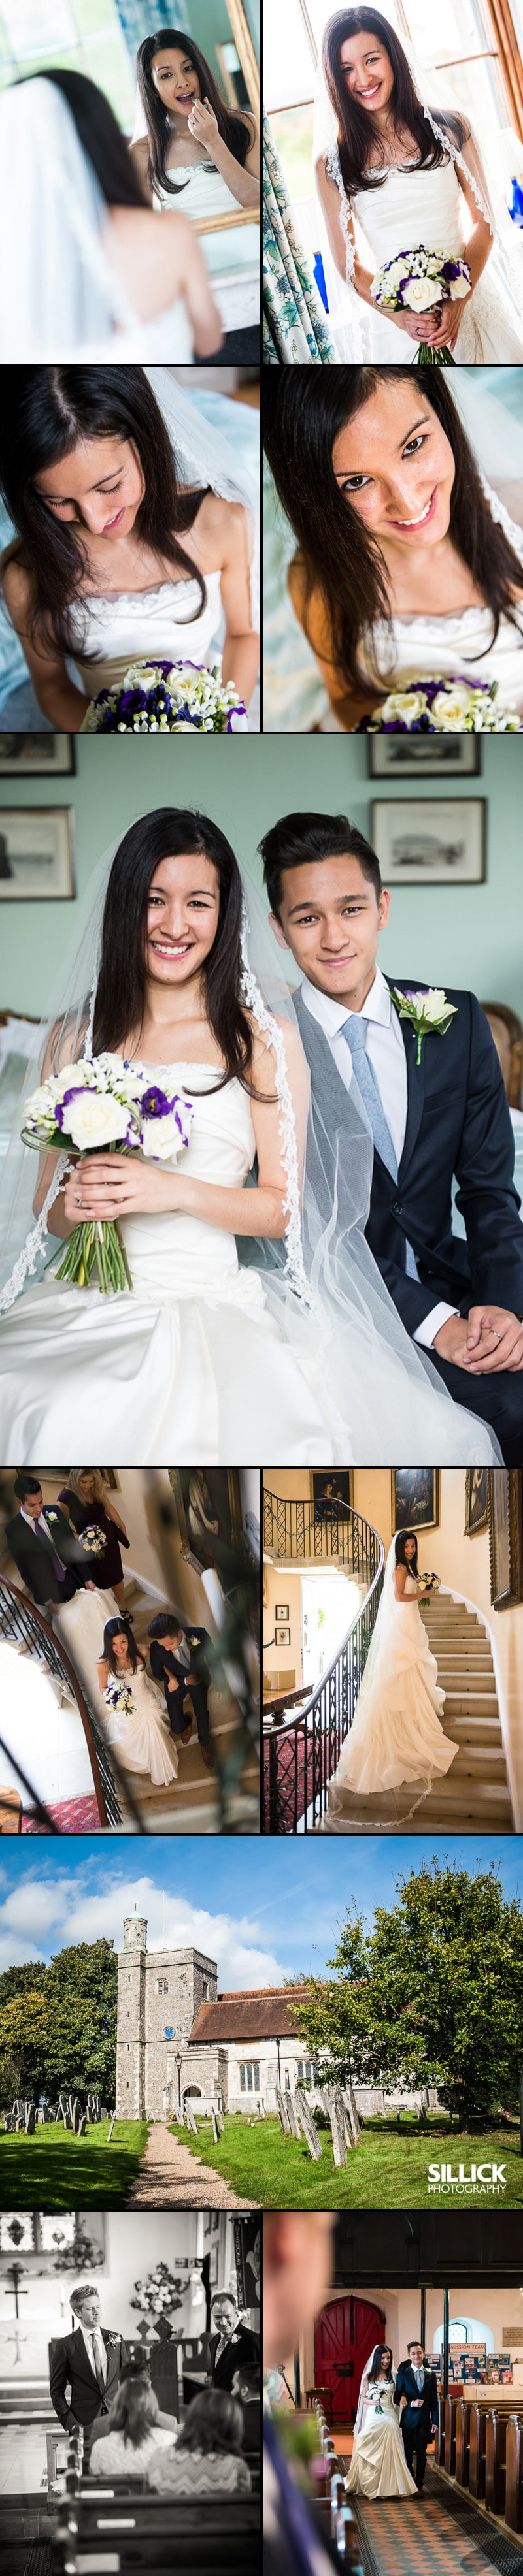 Hill Place wedding - Sillick Photography - Hampshire wedding photography